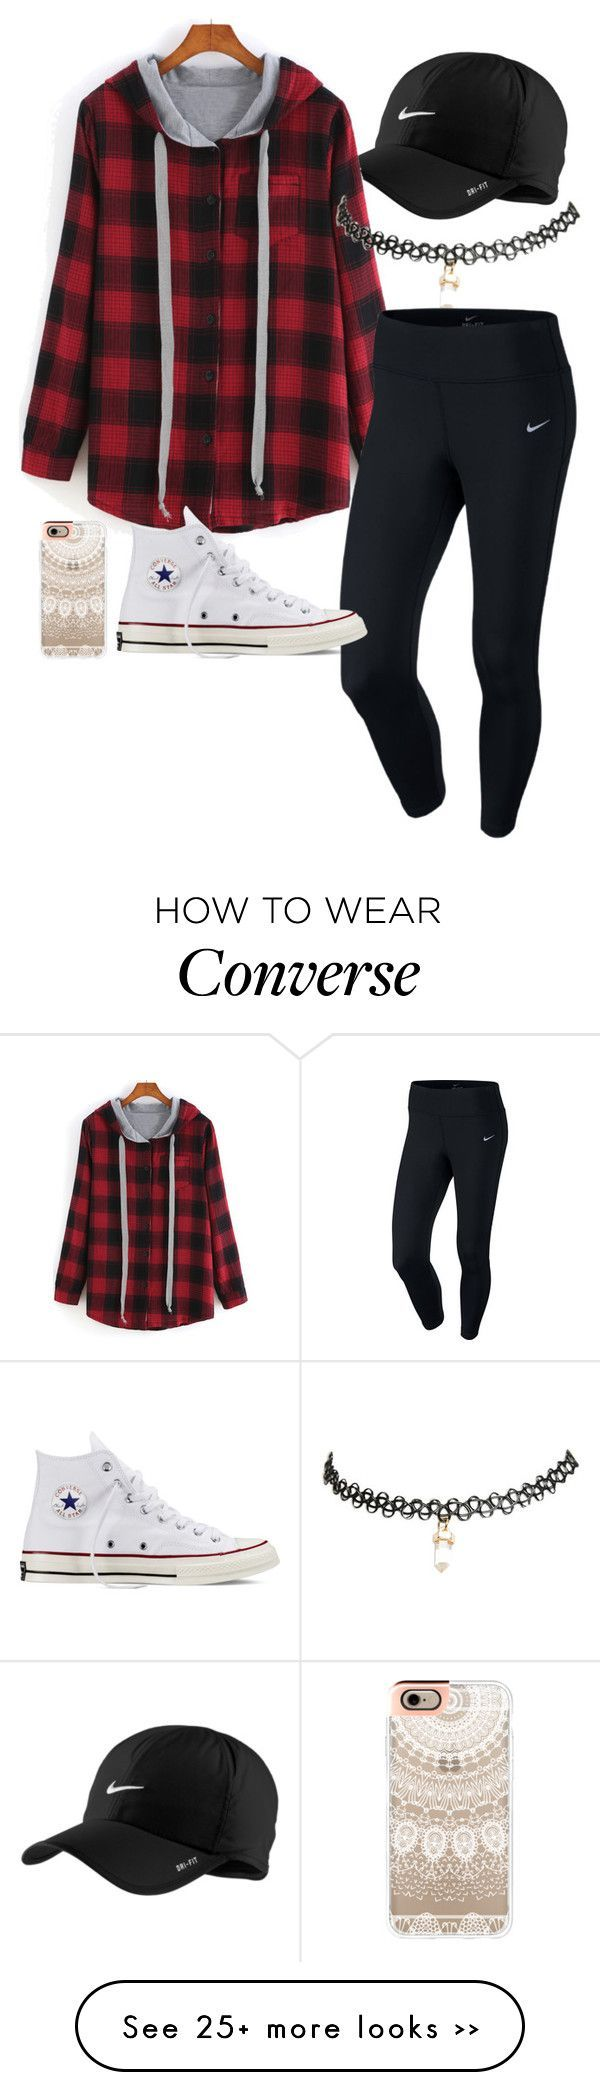 """Untitled #1"" by taylorfrankhauser12 on Polyvore featuring NIKE, Wet Seal, Converse and Casetify"